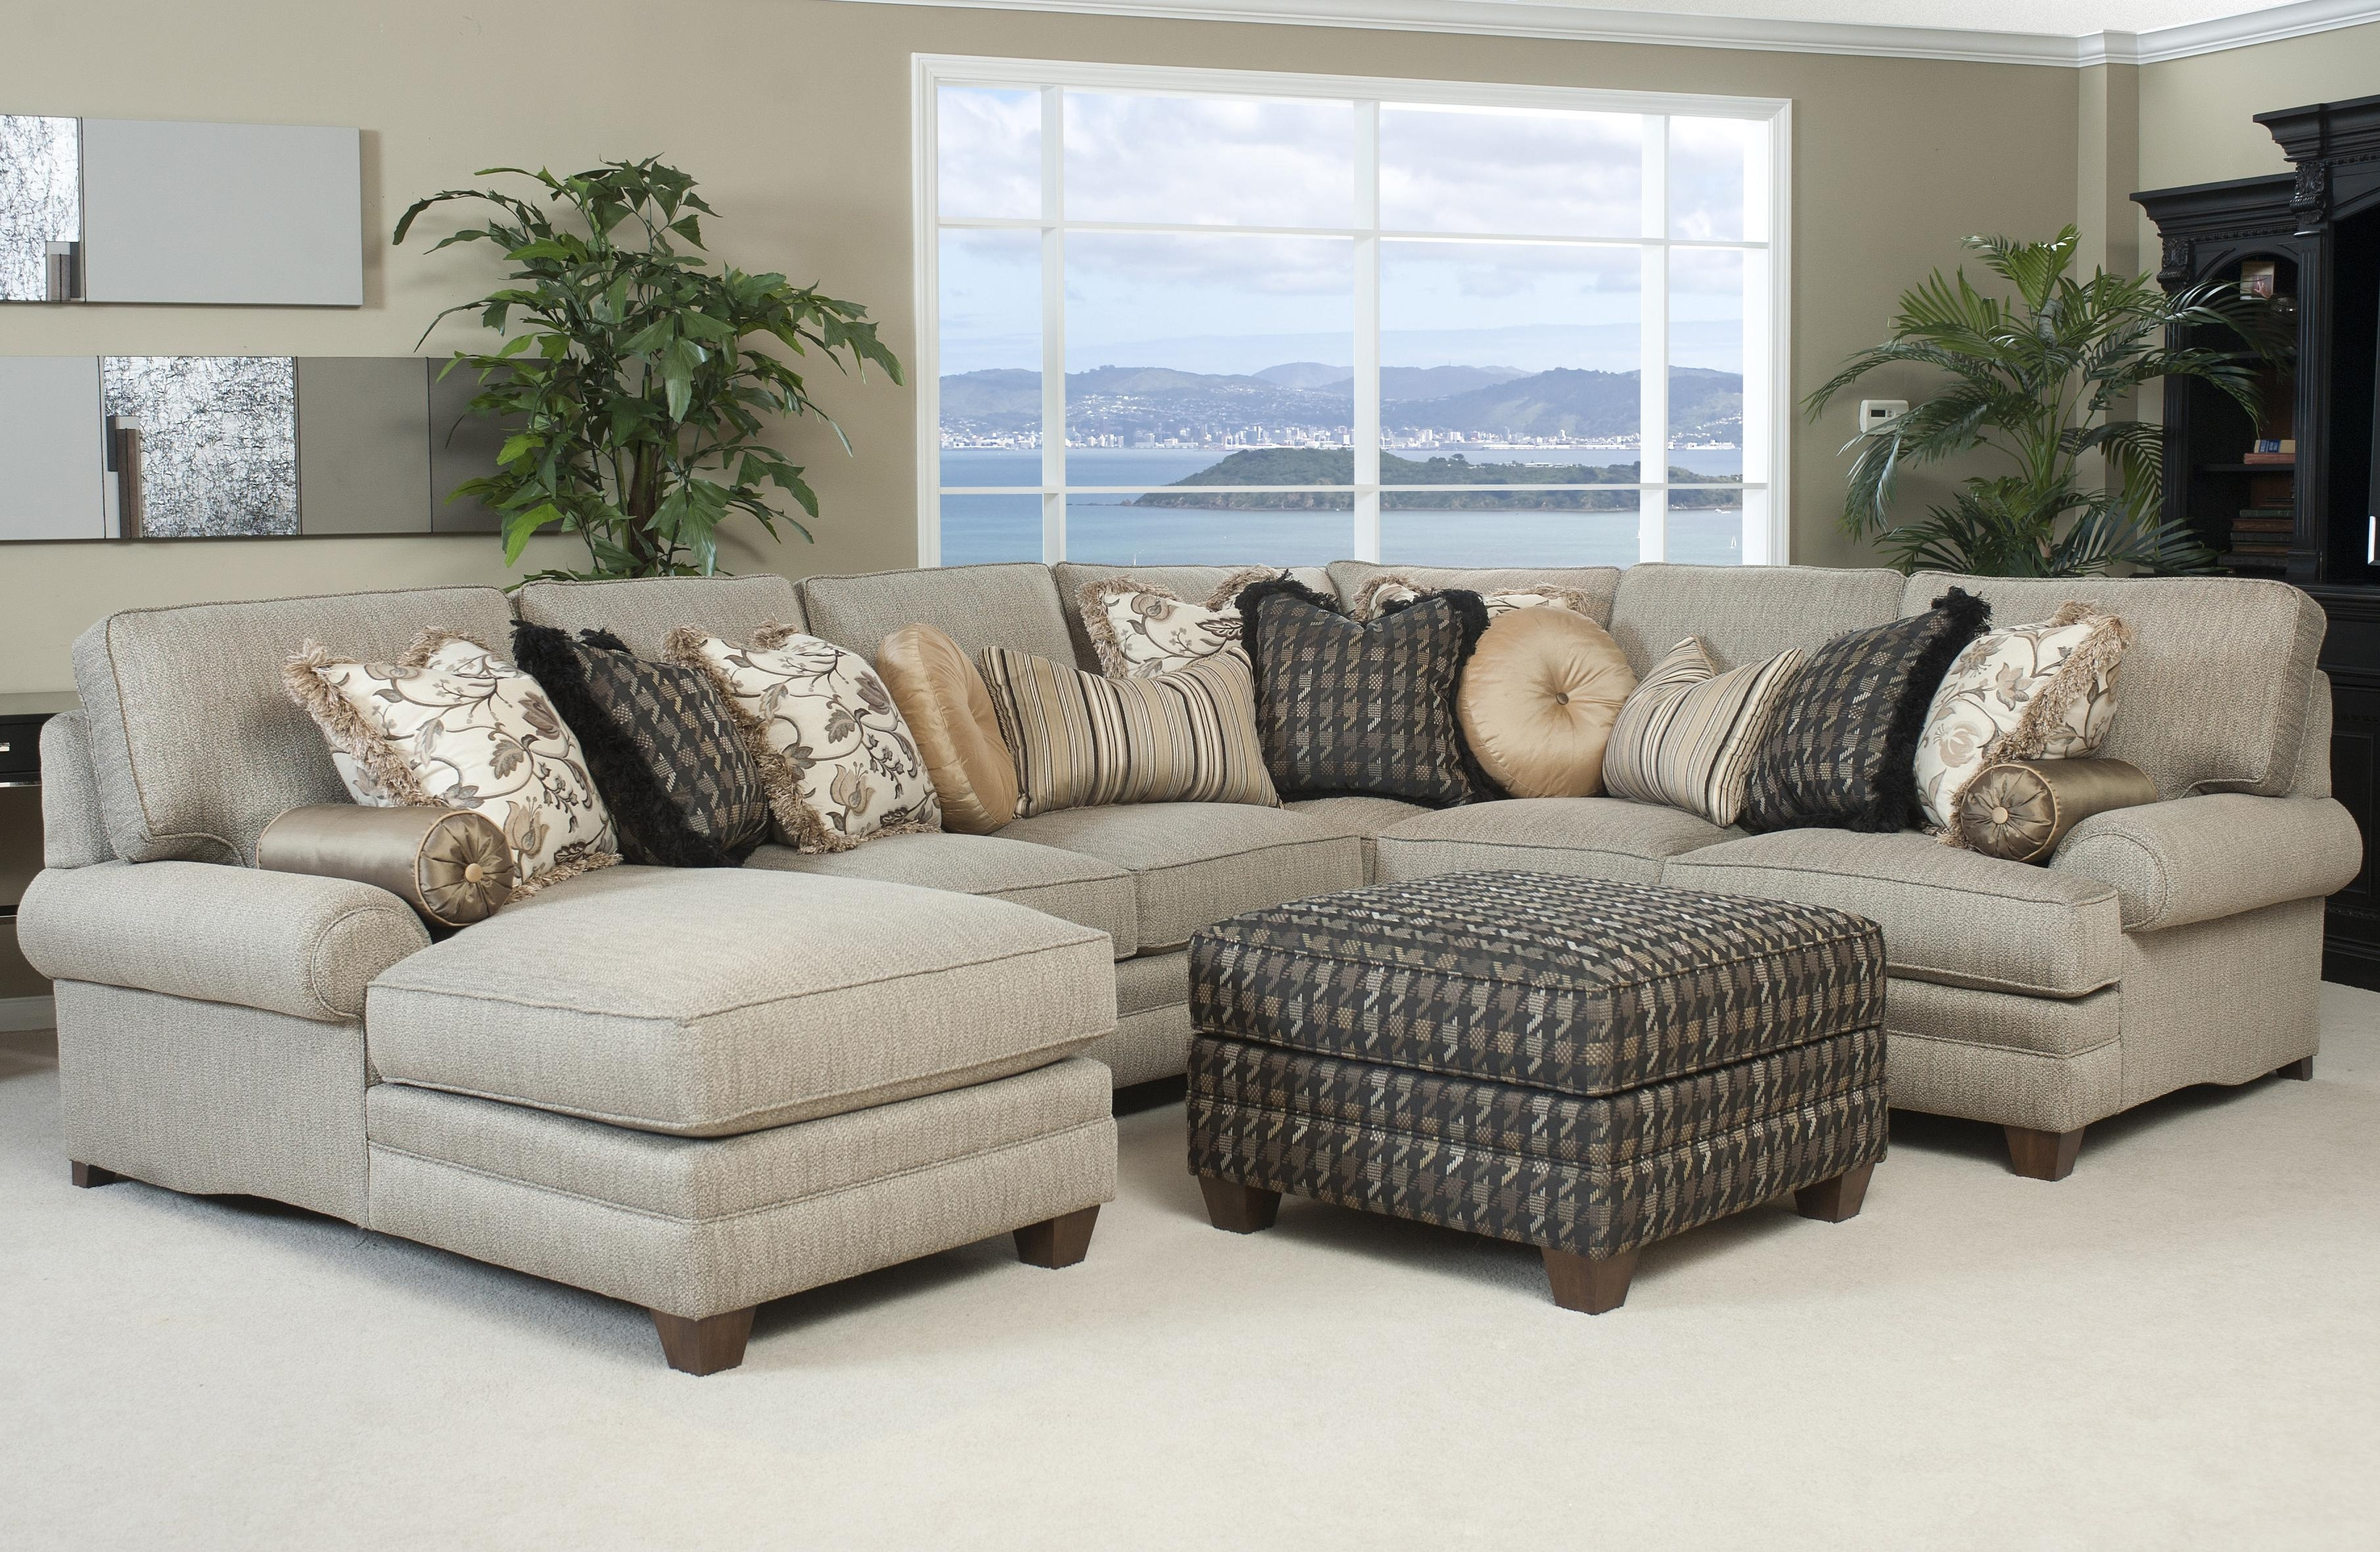 Sectional Sofas For Sale | Aifaresidency inside On Sale Sectional Sofas (Image 8 of 10)